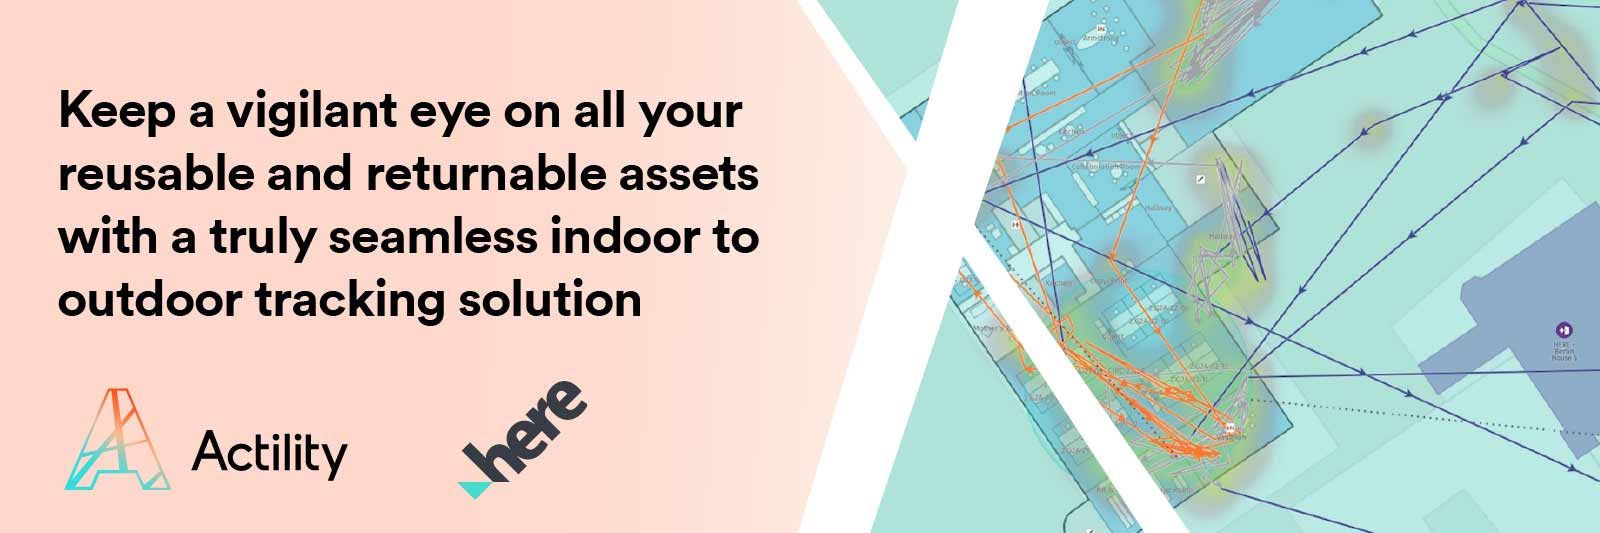 Image for Here indoor asset tracking solution